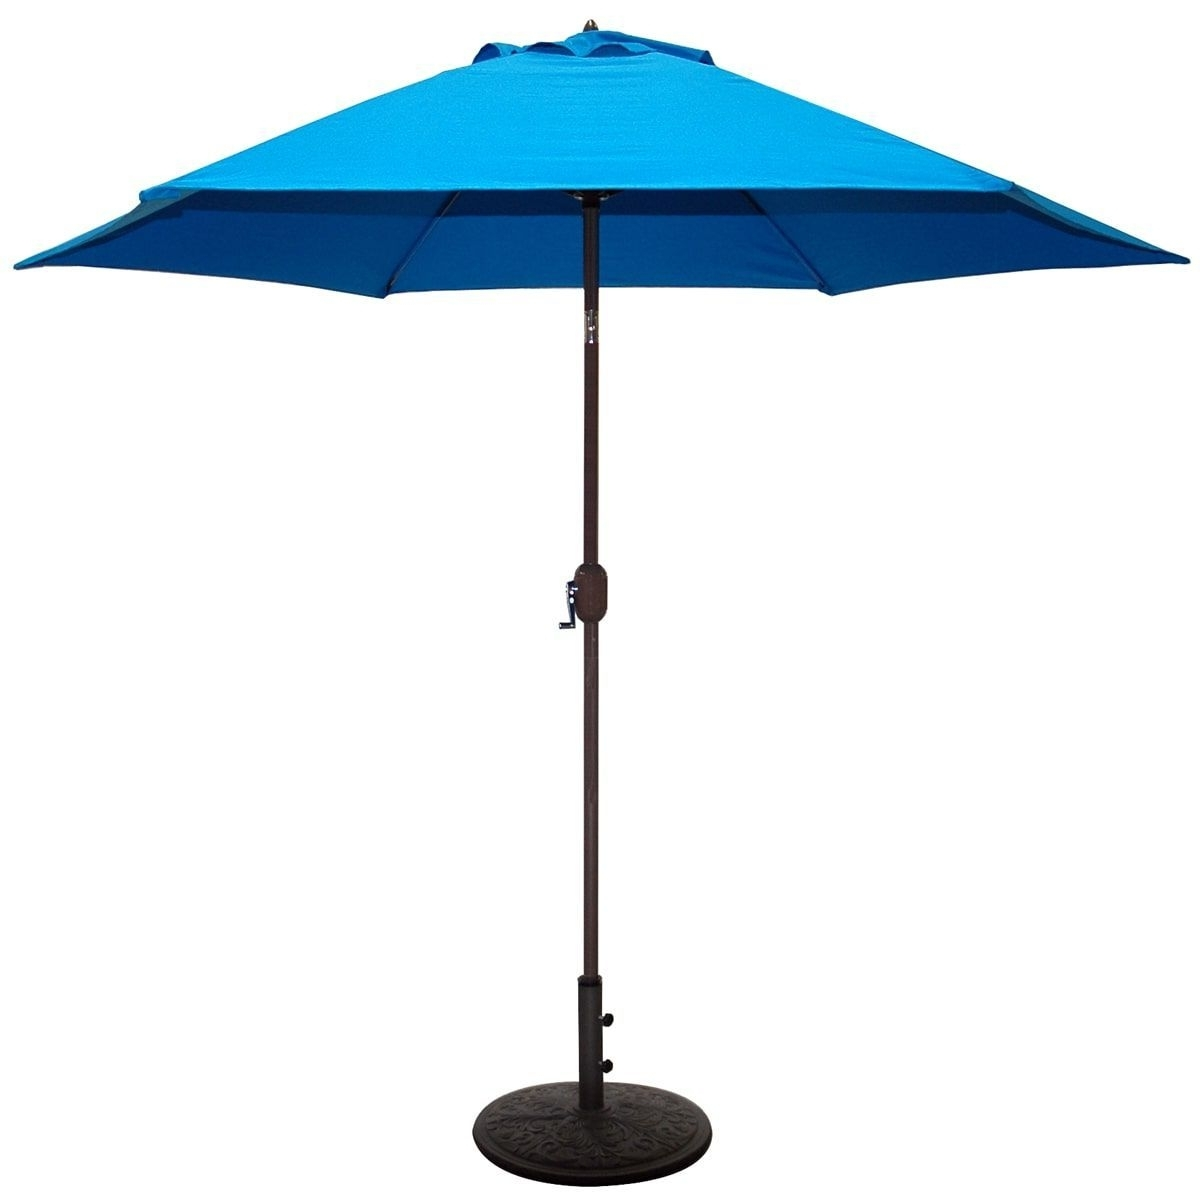 2019 Blue Patio Umbrellas Pertaining To Tropishade 9 Ft (View 1 of 20)